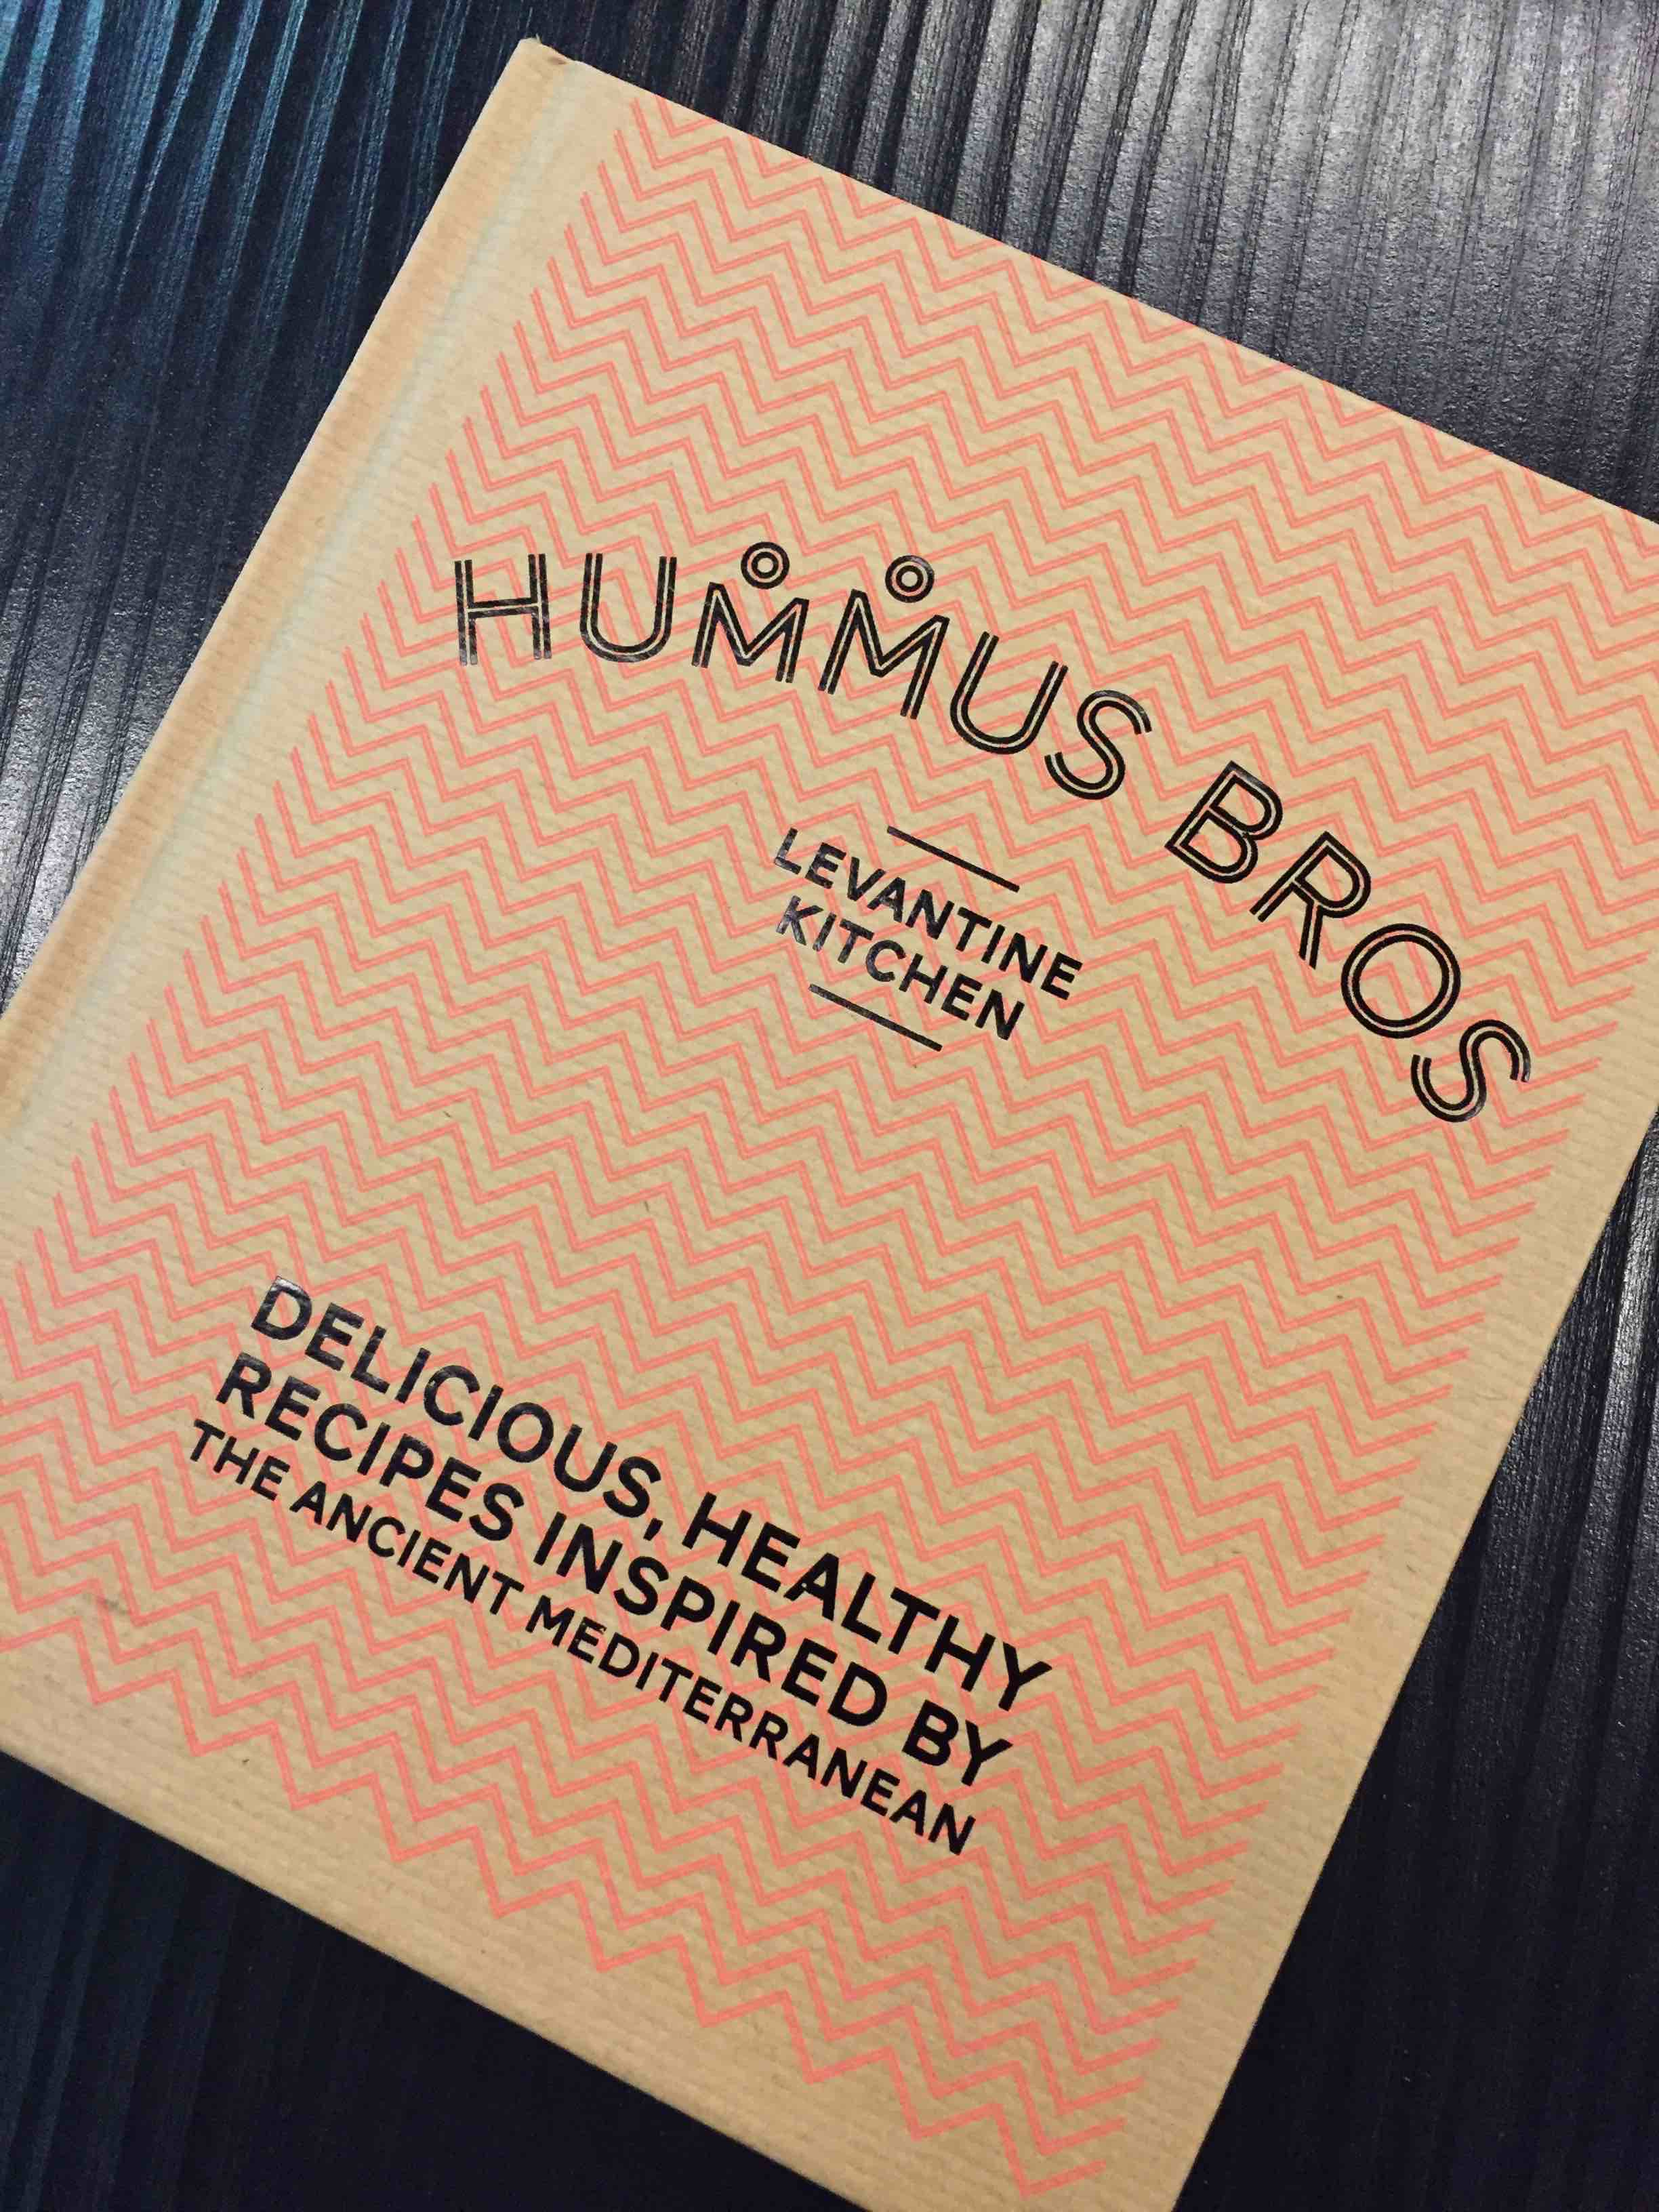 Hummus Bros cookbook